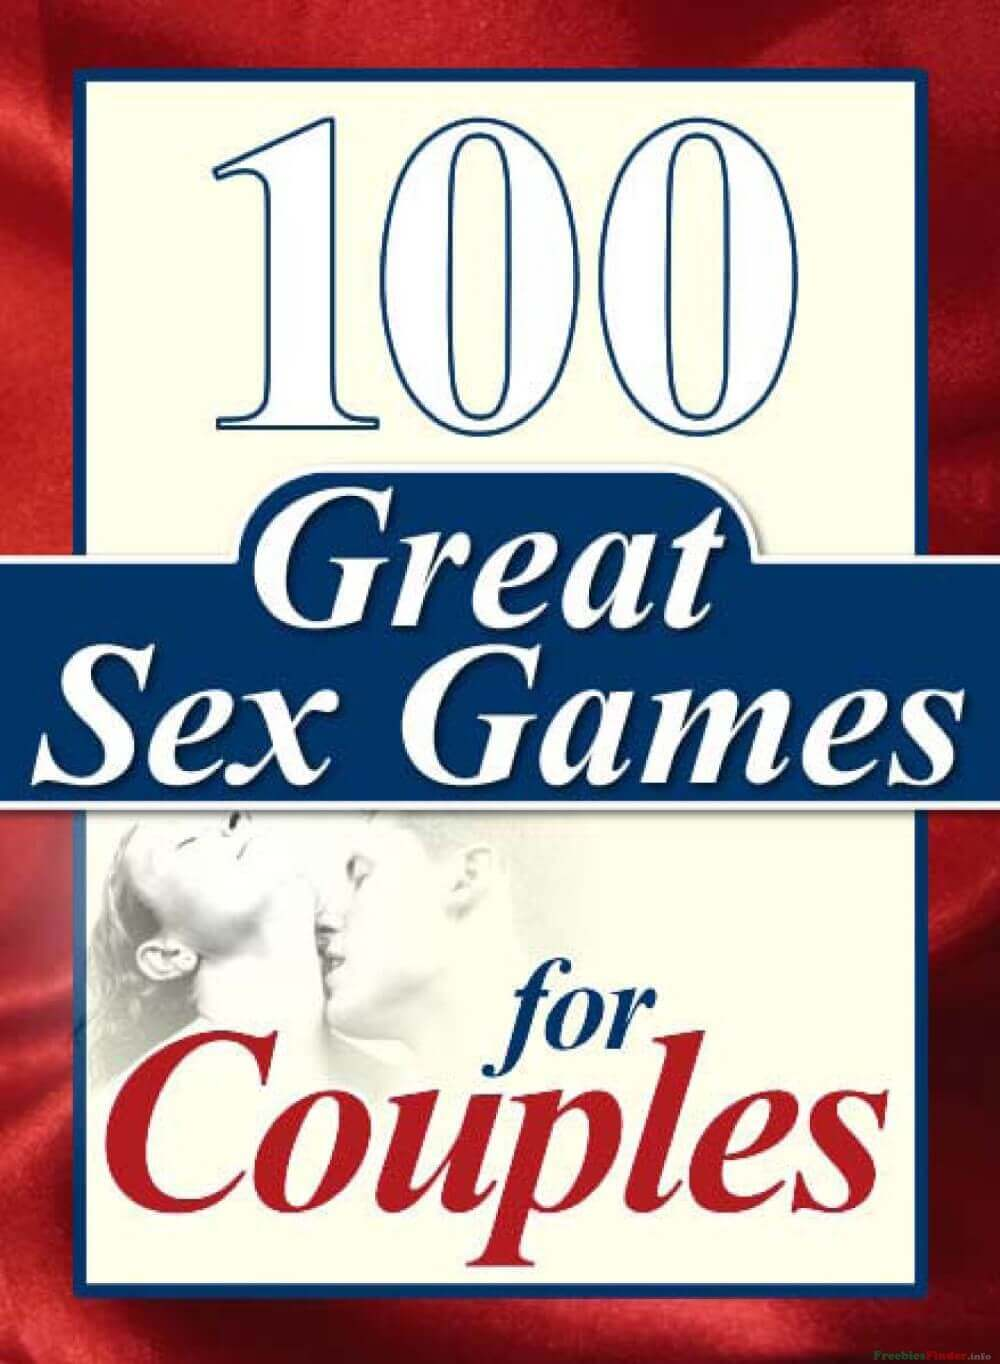 100 Great Sex Games For Couples Review – Read Before You Buy